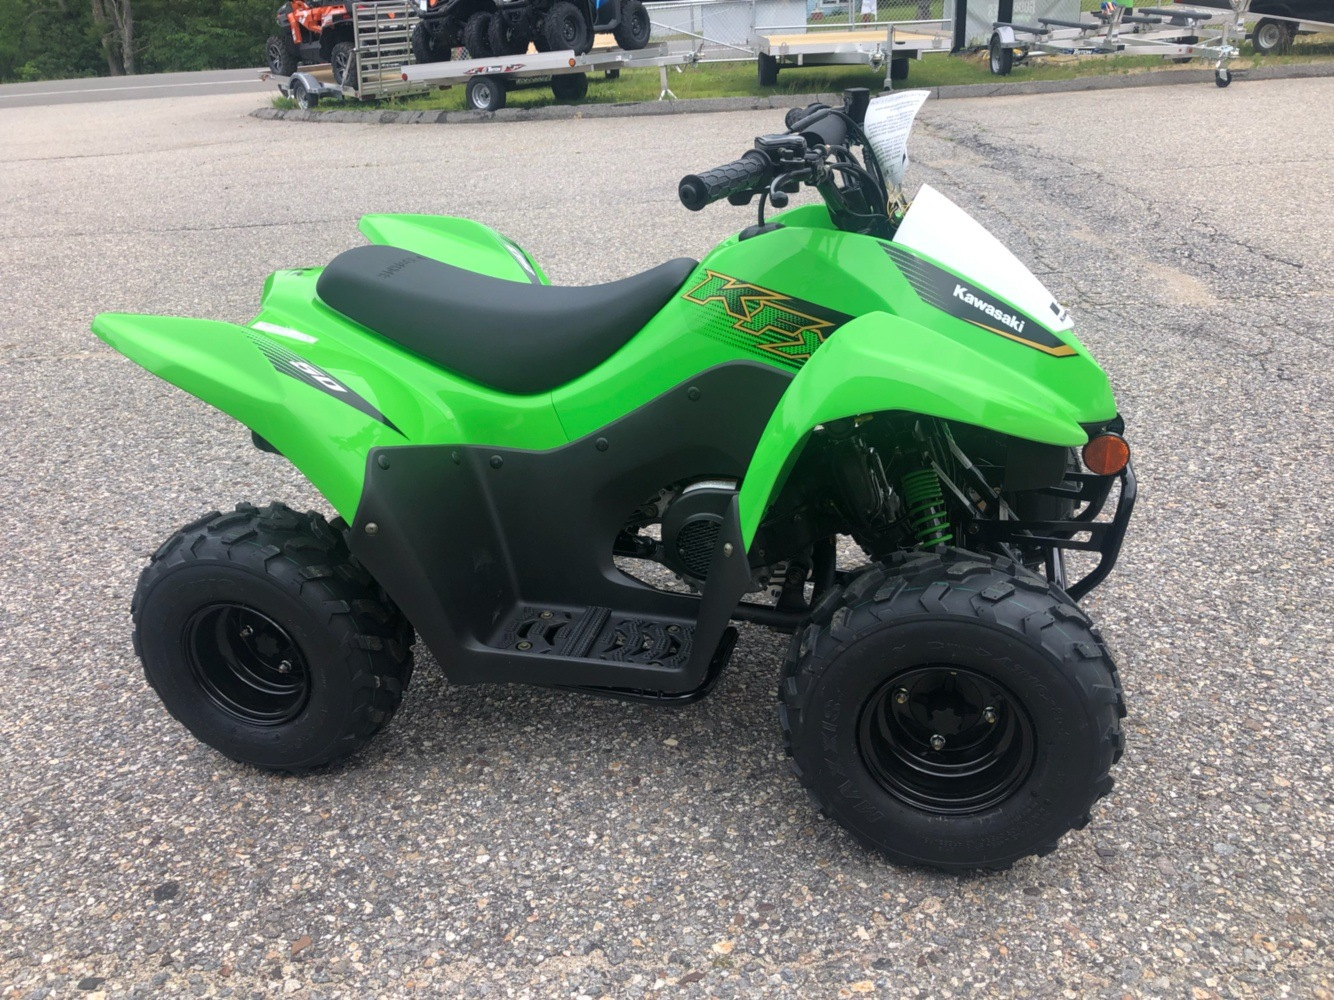 2020 Kawasaki KFX 50 in Lebanon, Maine - Photo 2